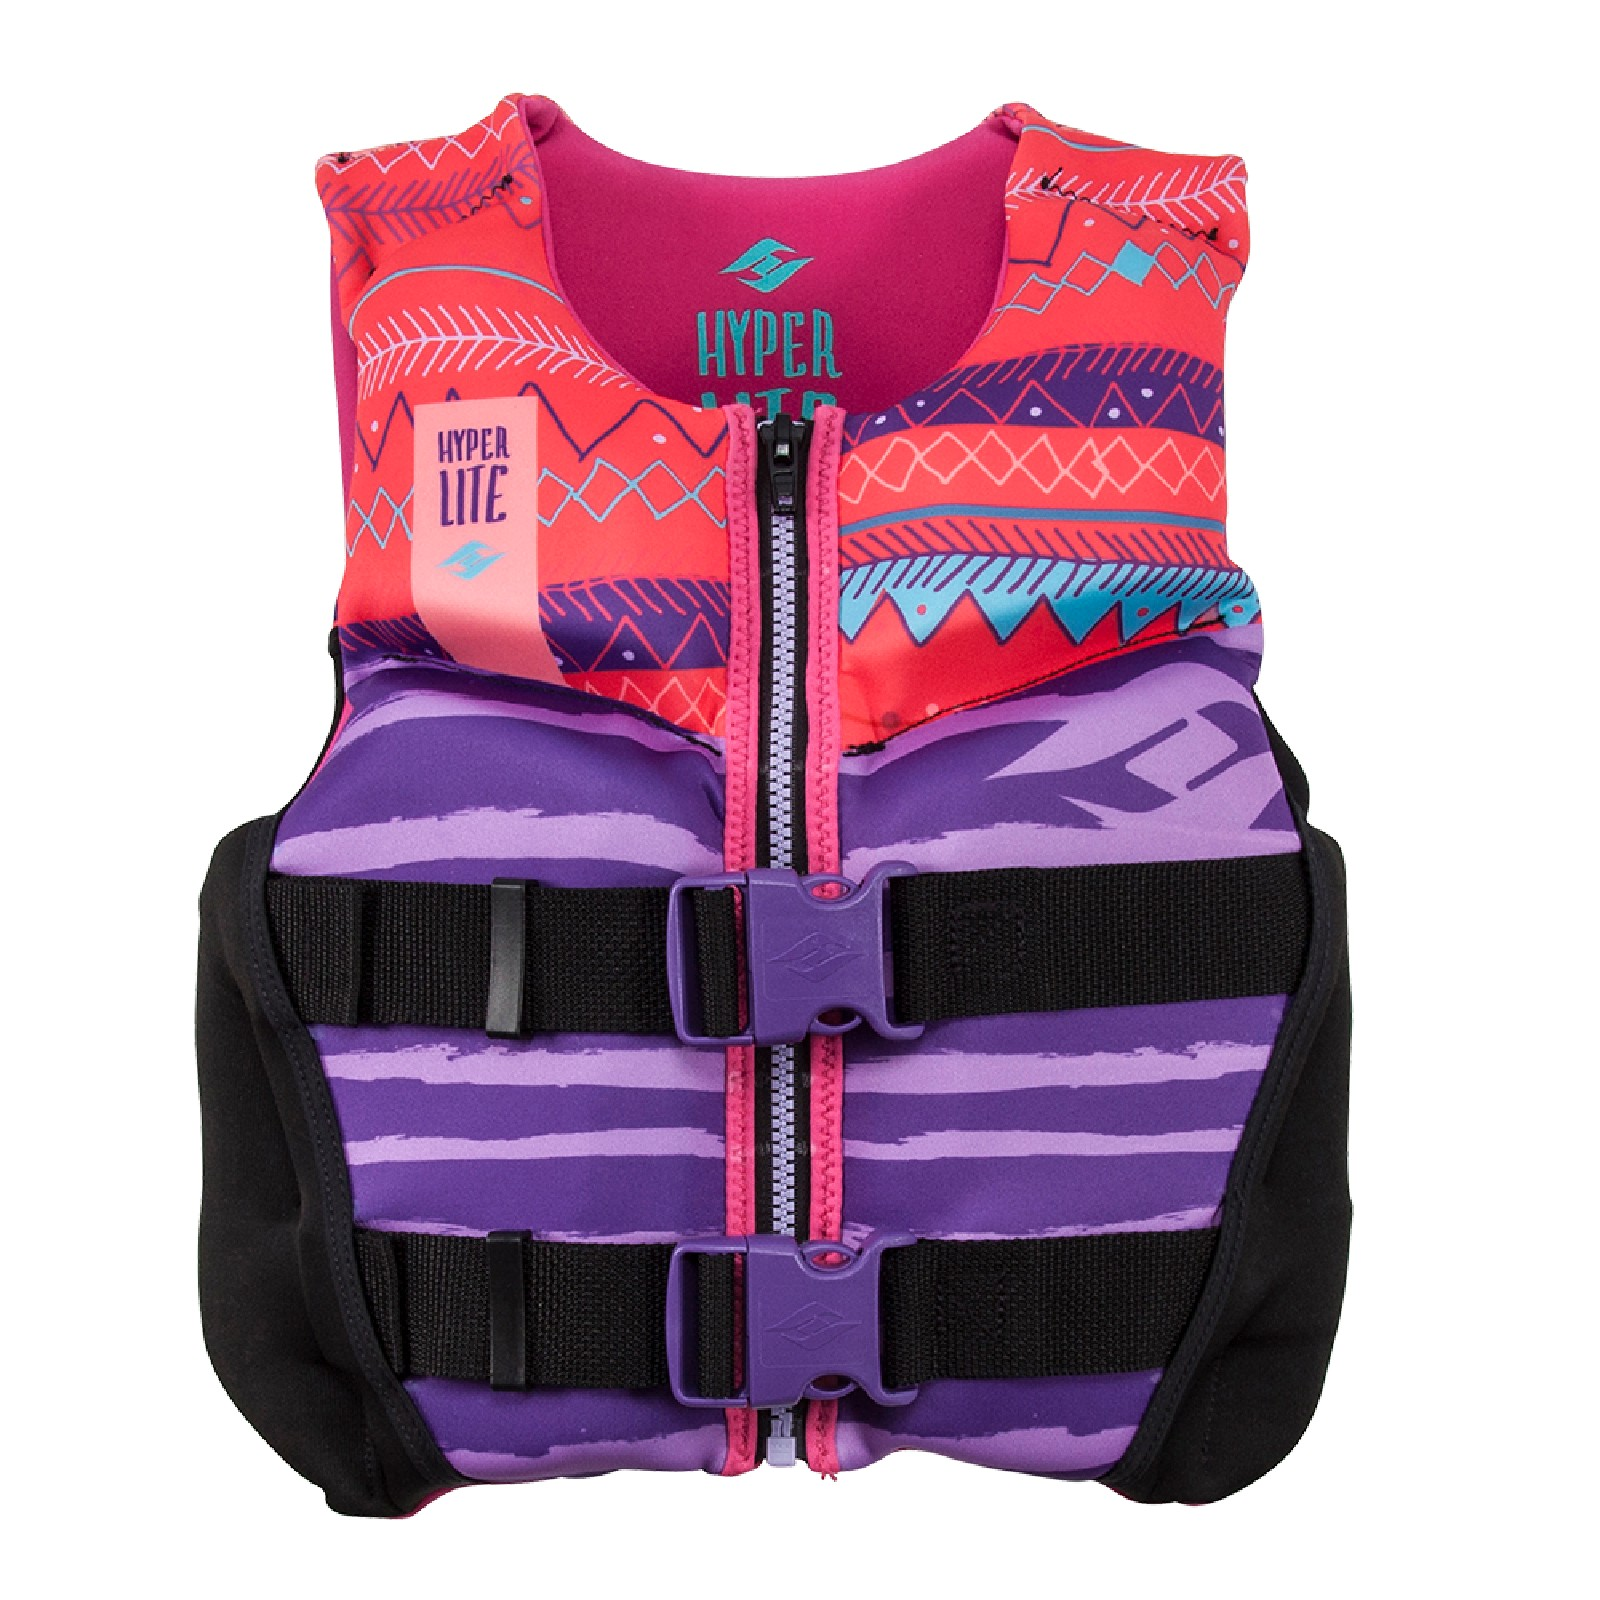 GIRL'S YOUTH INDY NEO VEST SM 22-40KG HYPERLITE 2019